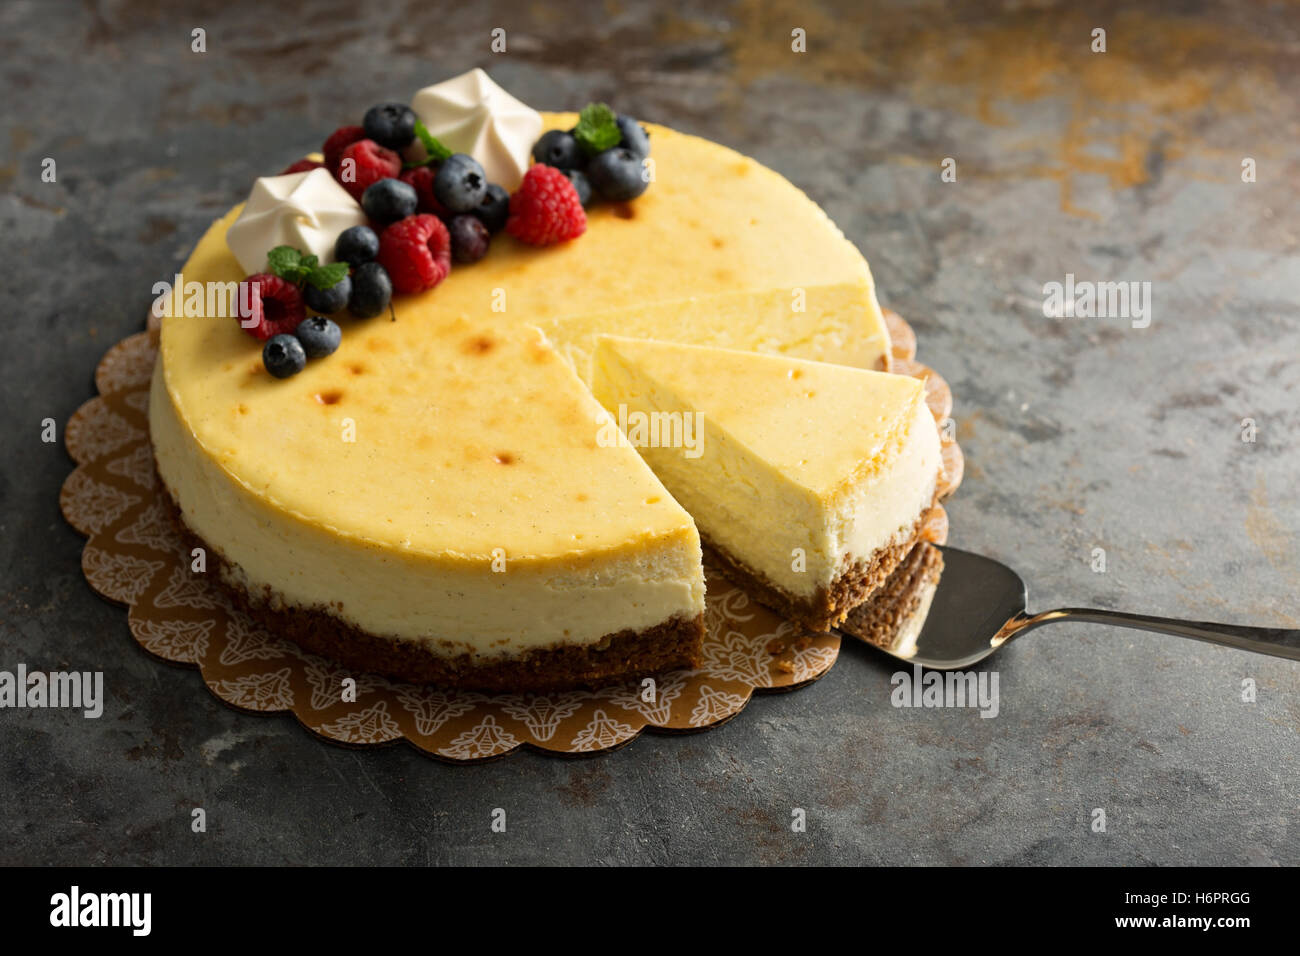 New York cheesecake on a cake stand - Stock Image